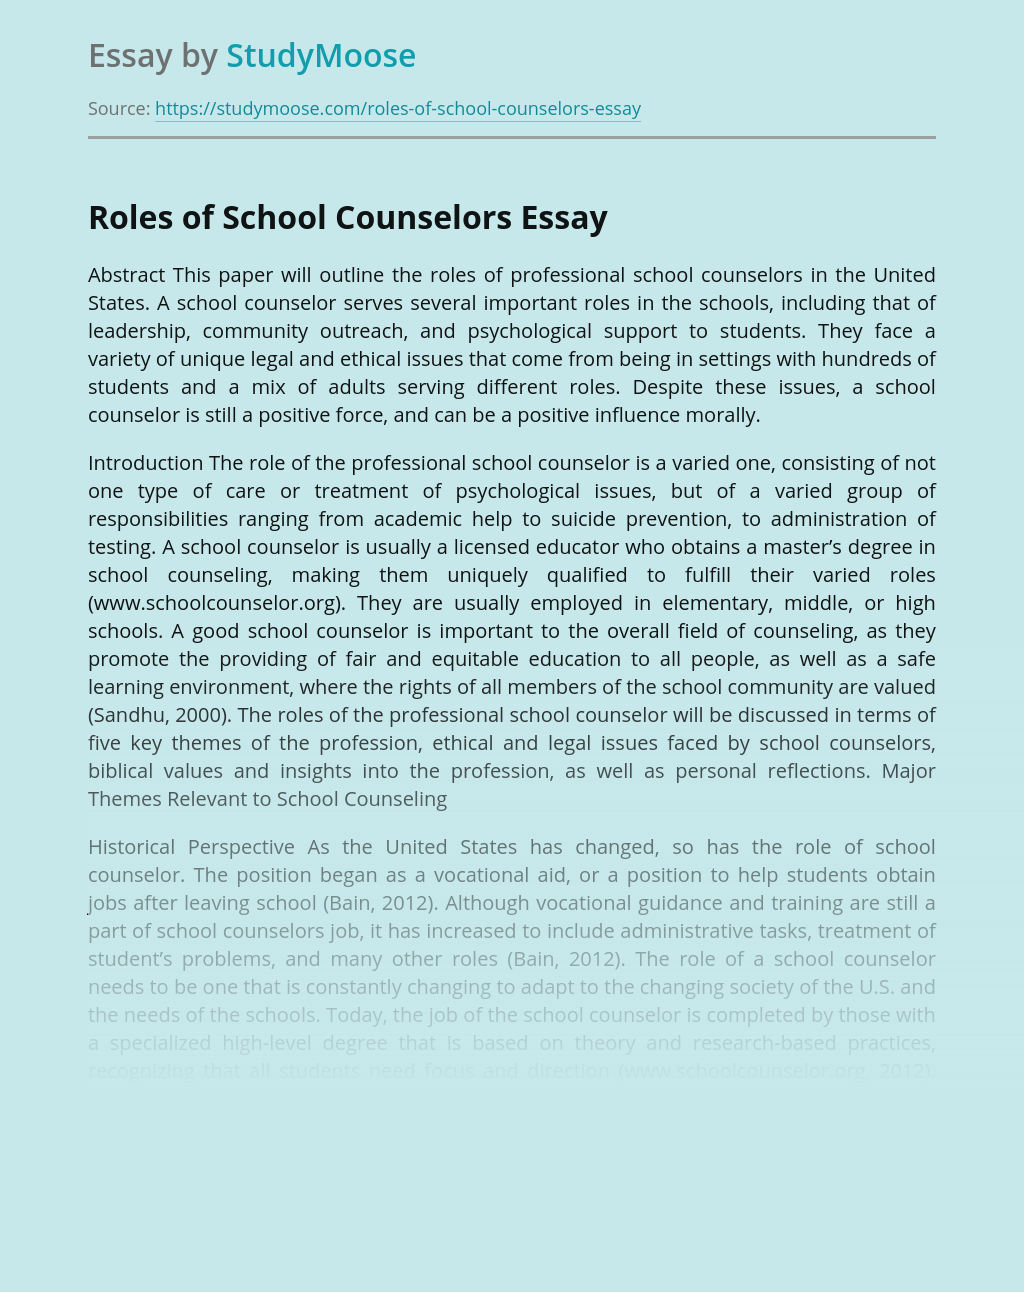 Roles of School Counselors